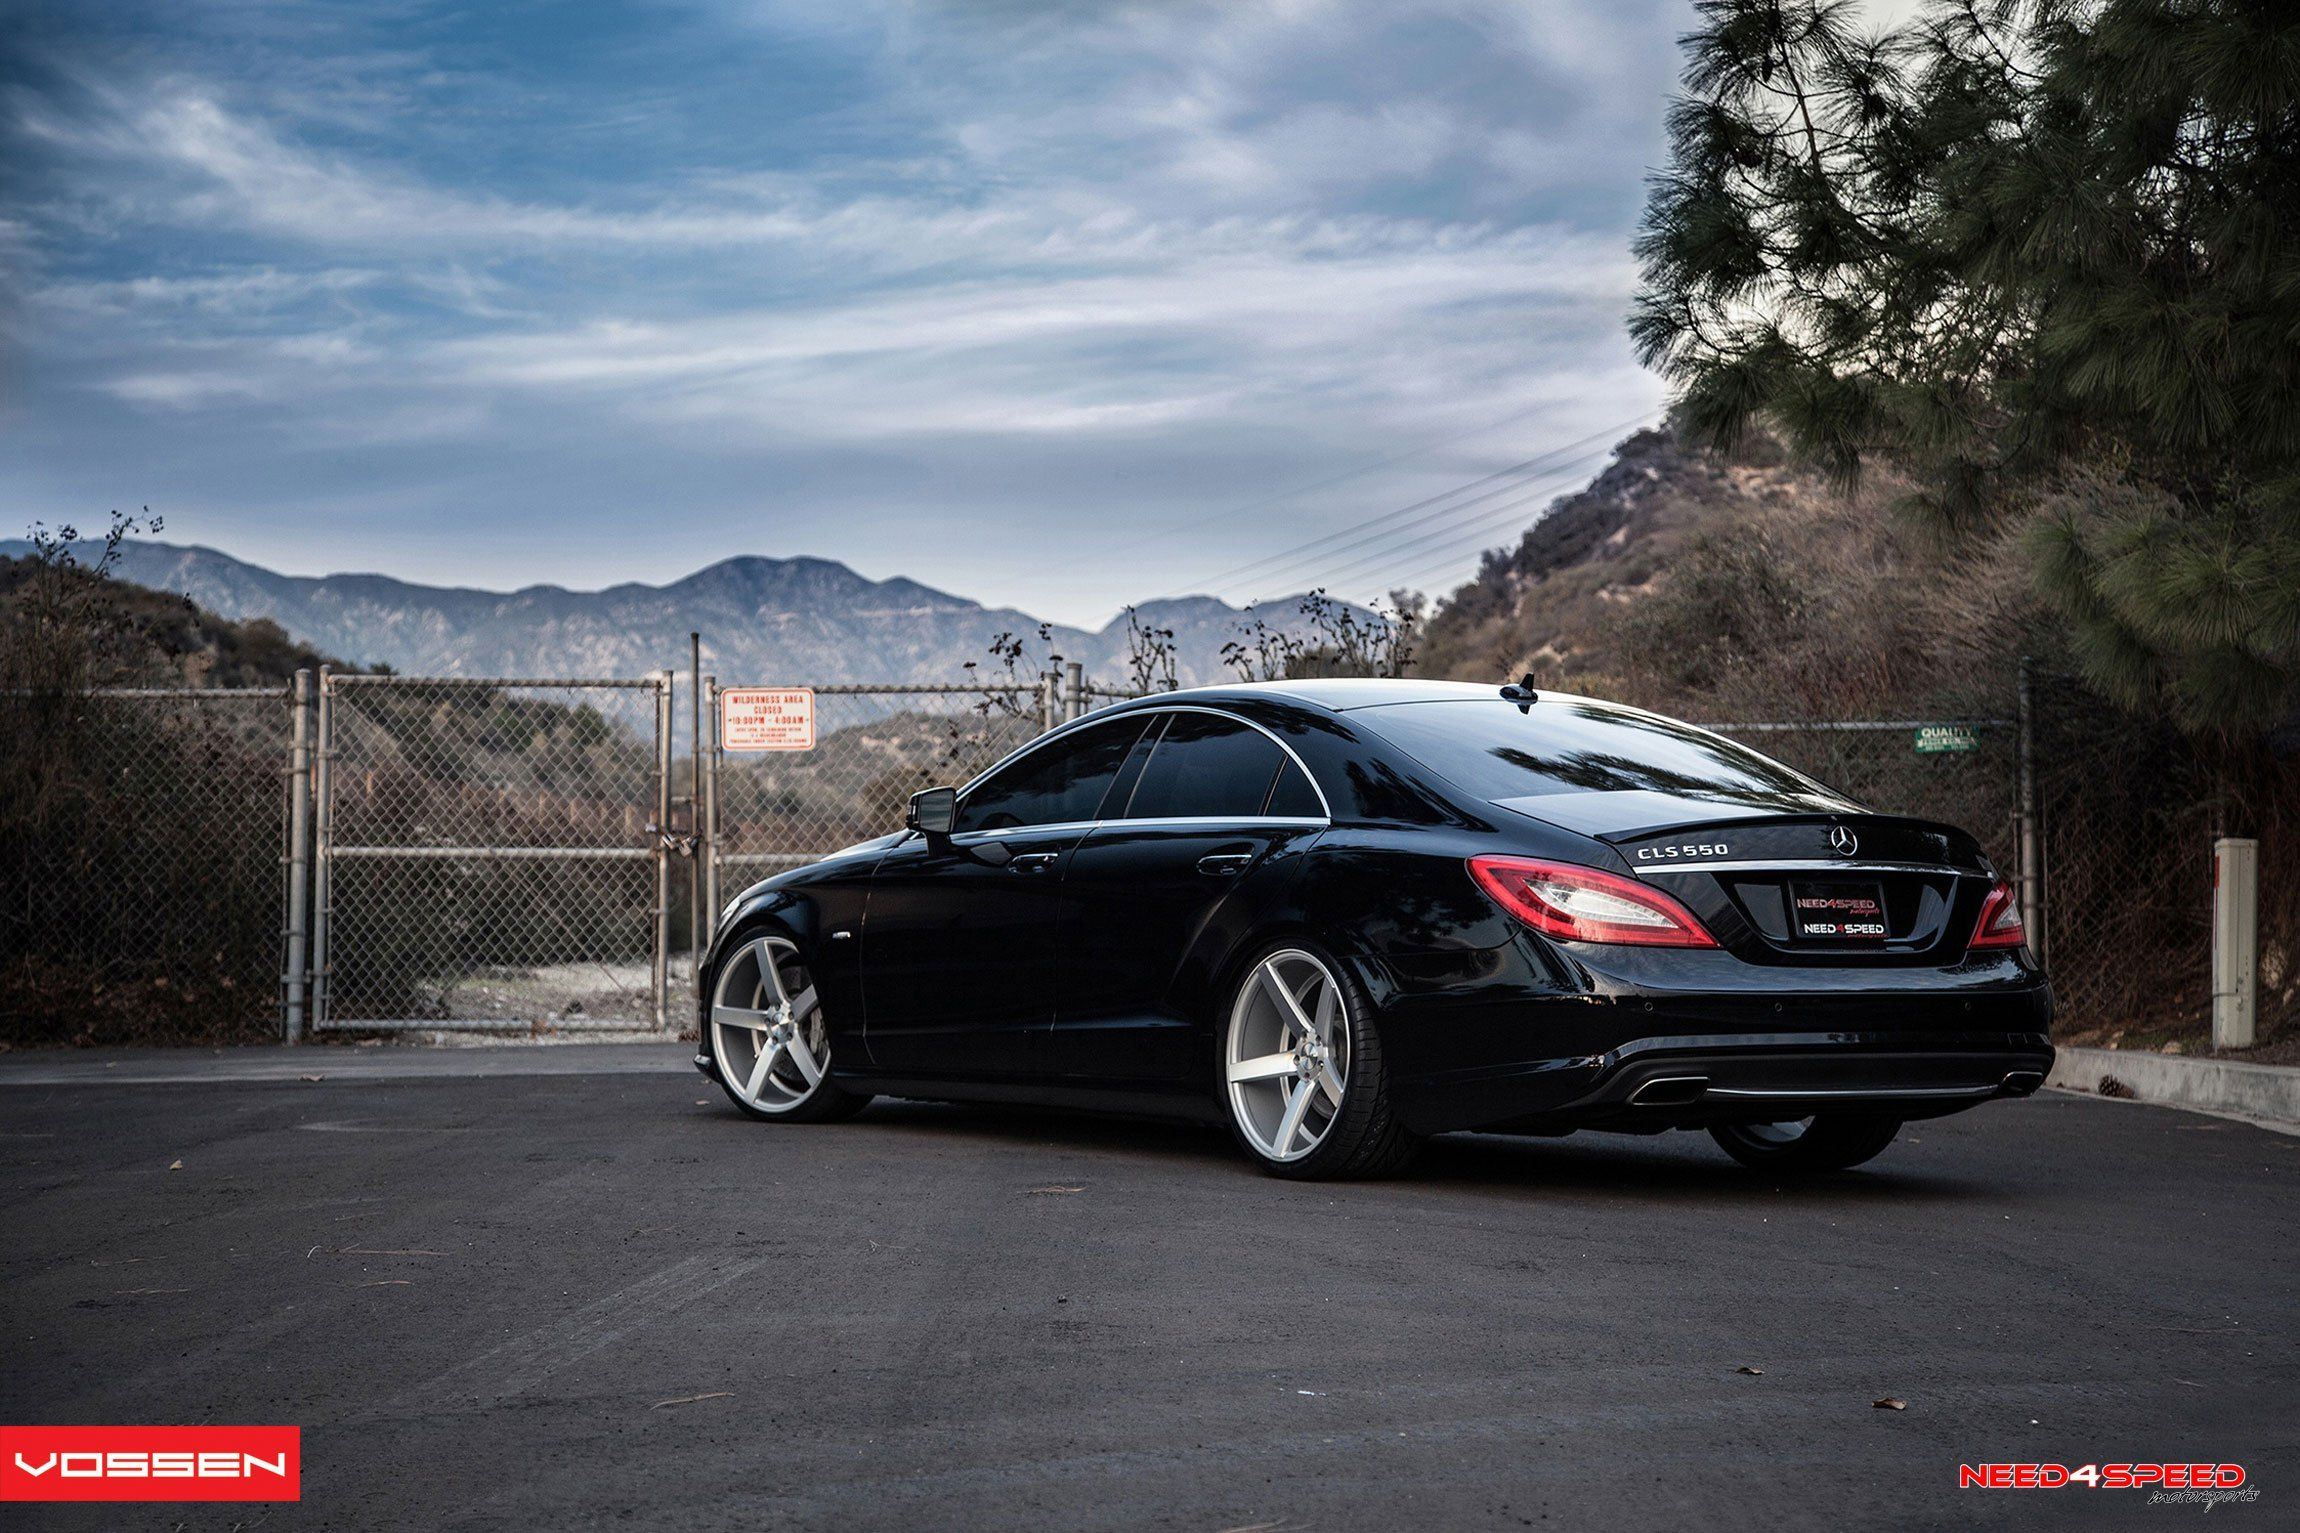 Stanced Out Mercedes Cls 550 With Sport Suspension And Vossen Rims Mercedes Benz Cls Mercedes Cls Mercedes Wallpaper